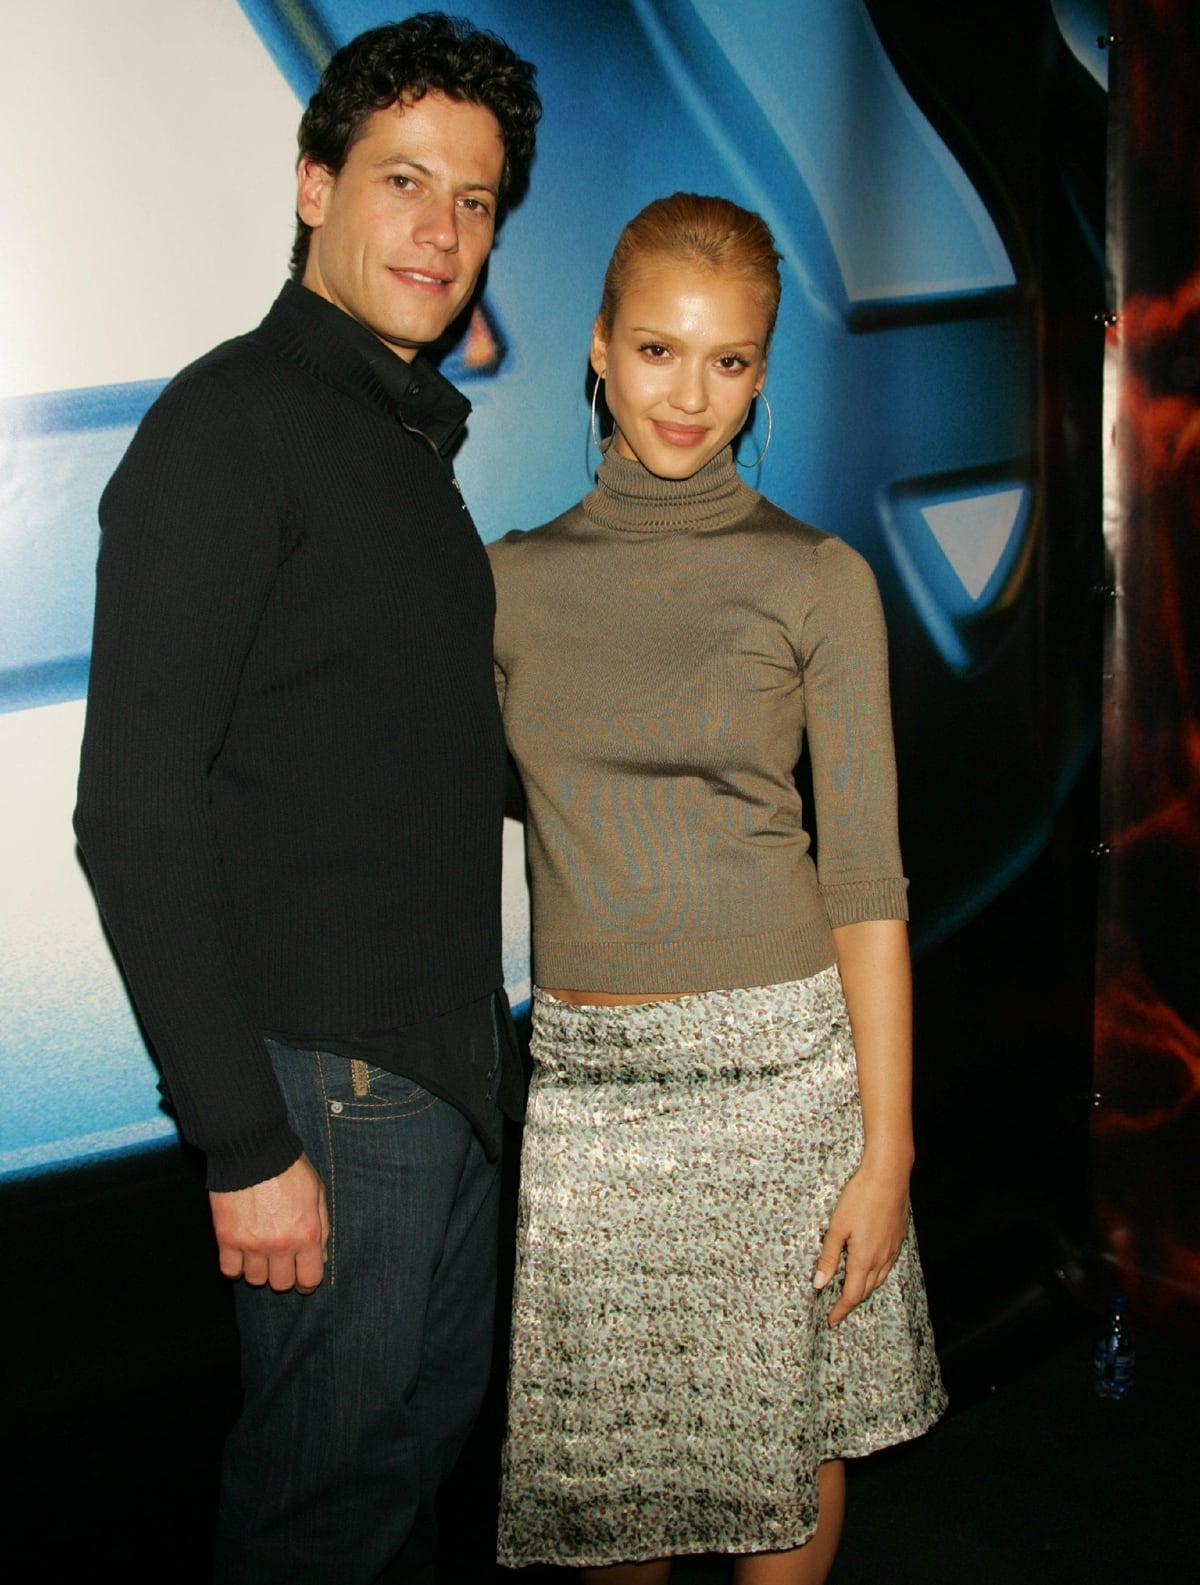 Ioan Gruffudd and Jessica Alba promoting their new movie Fantastic Four